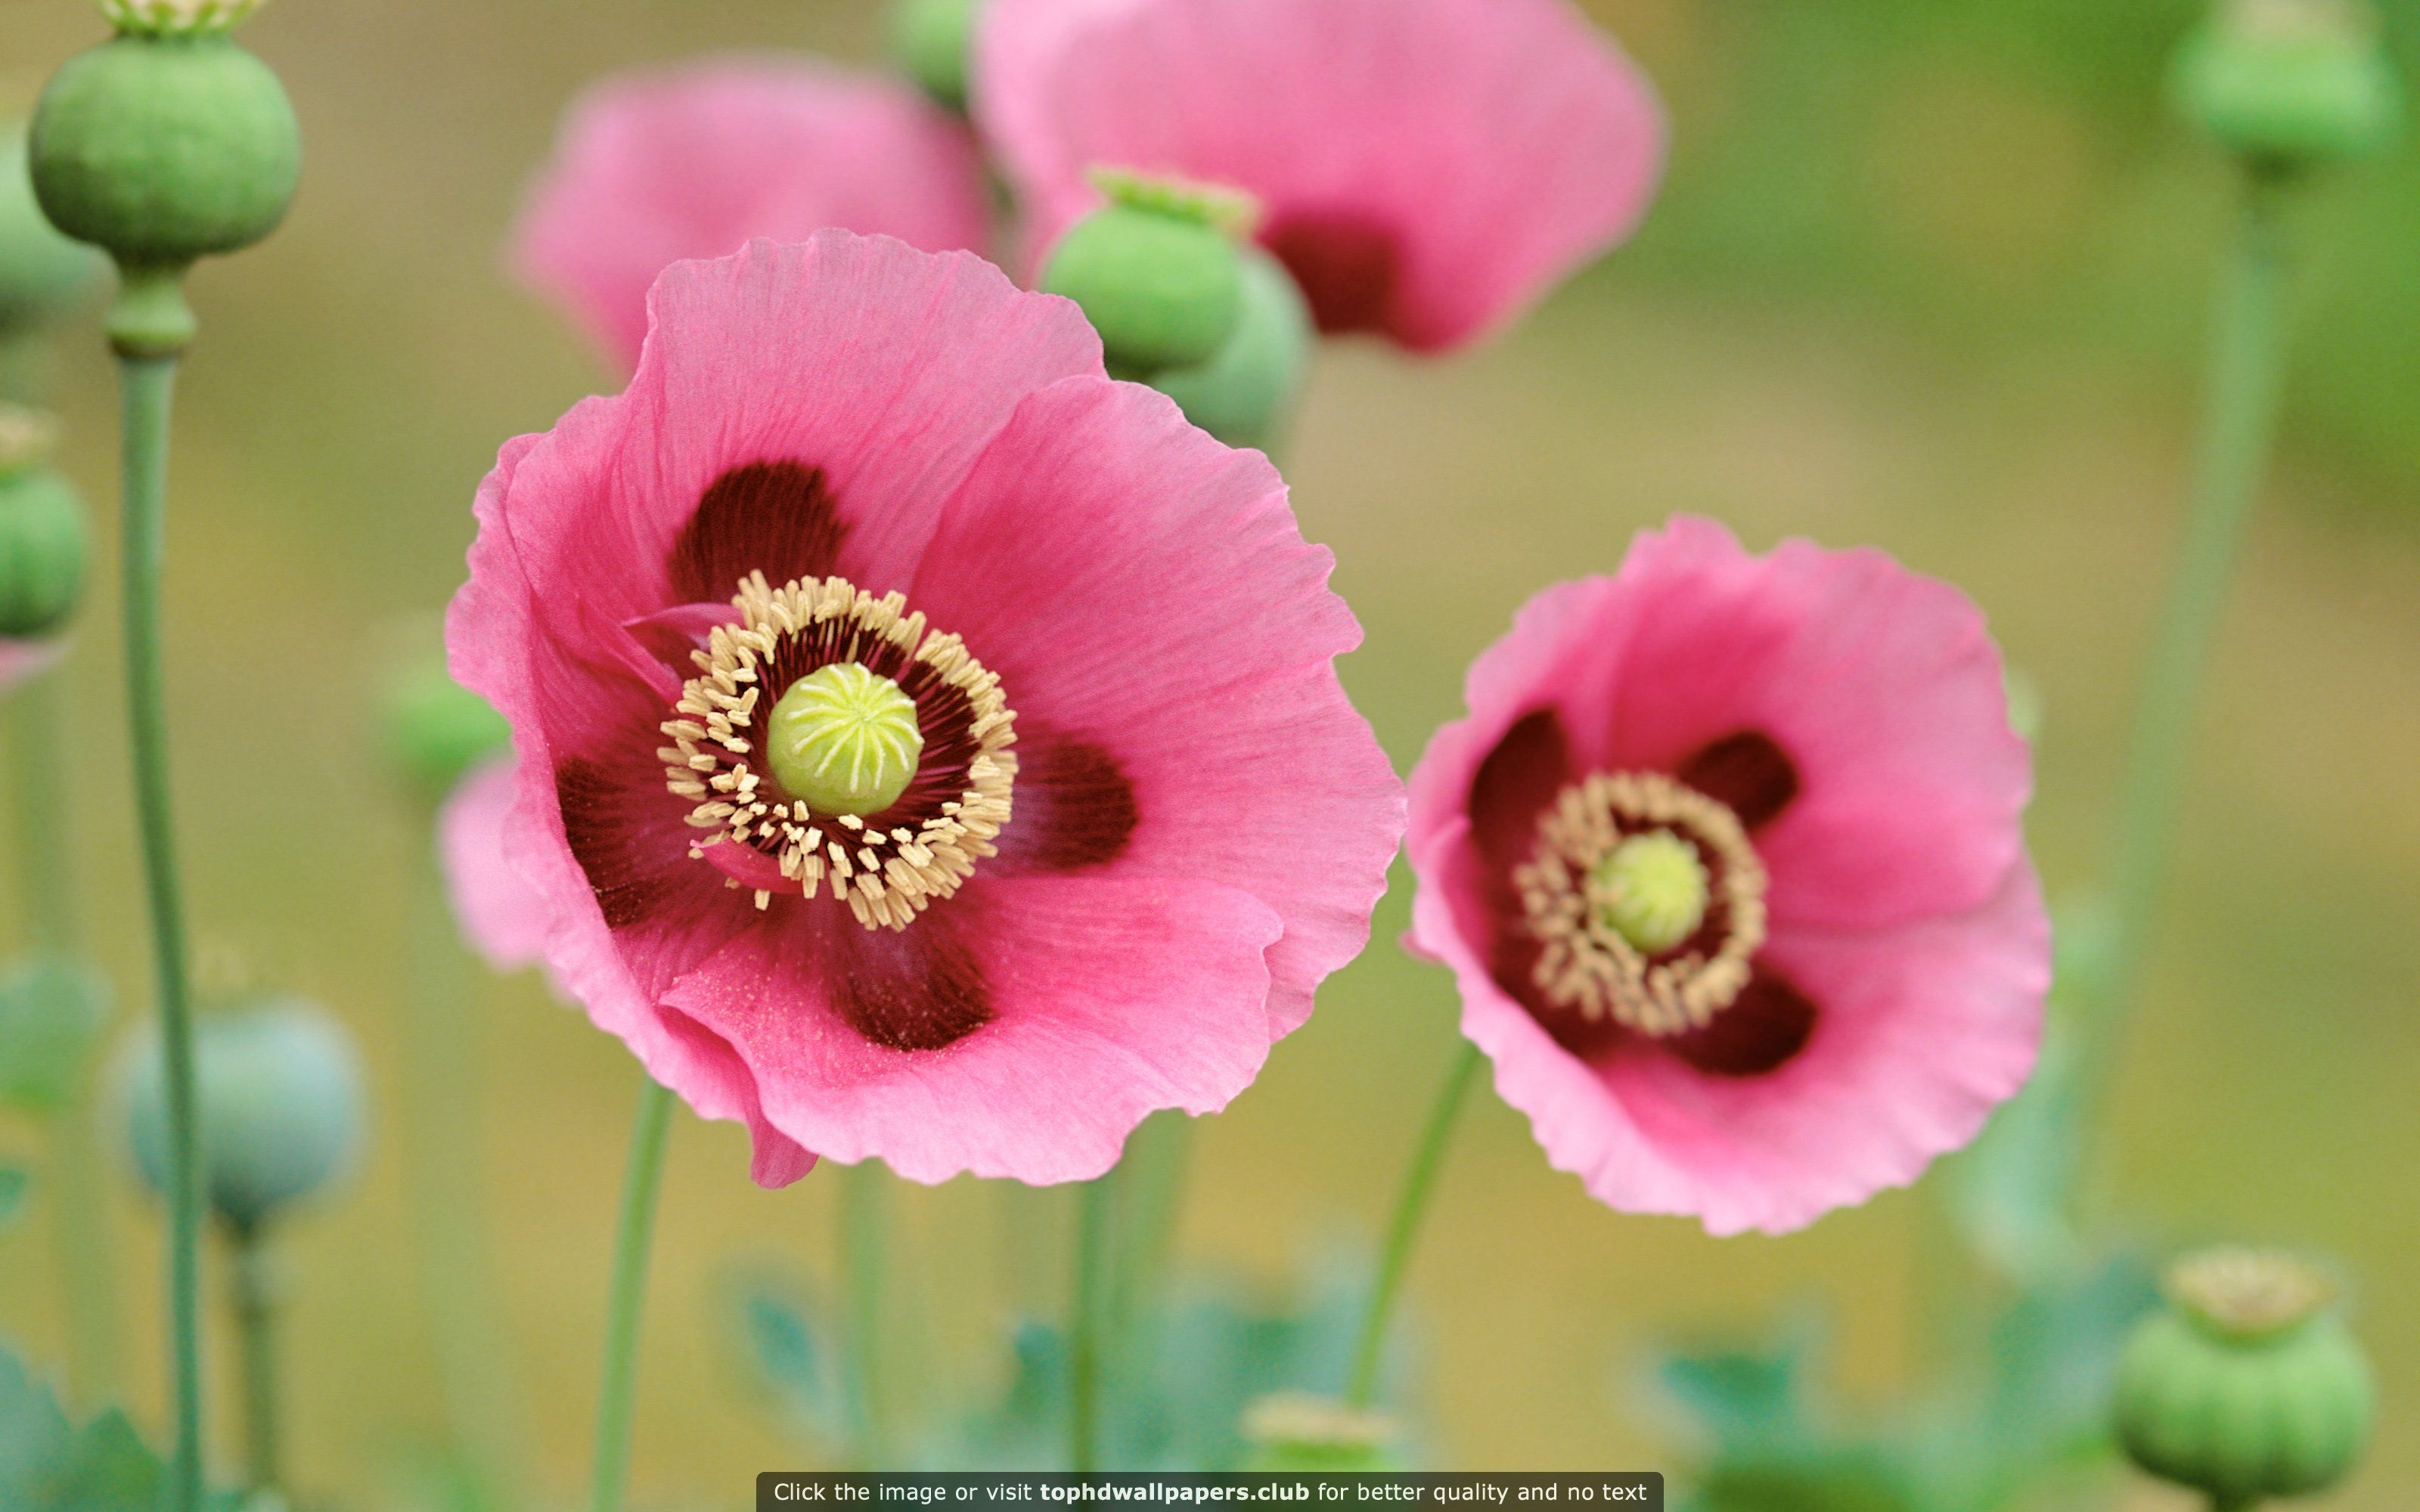 Poppies Flowers Hd Wallpaper For Your Pc Mac Or Mobile Device